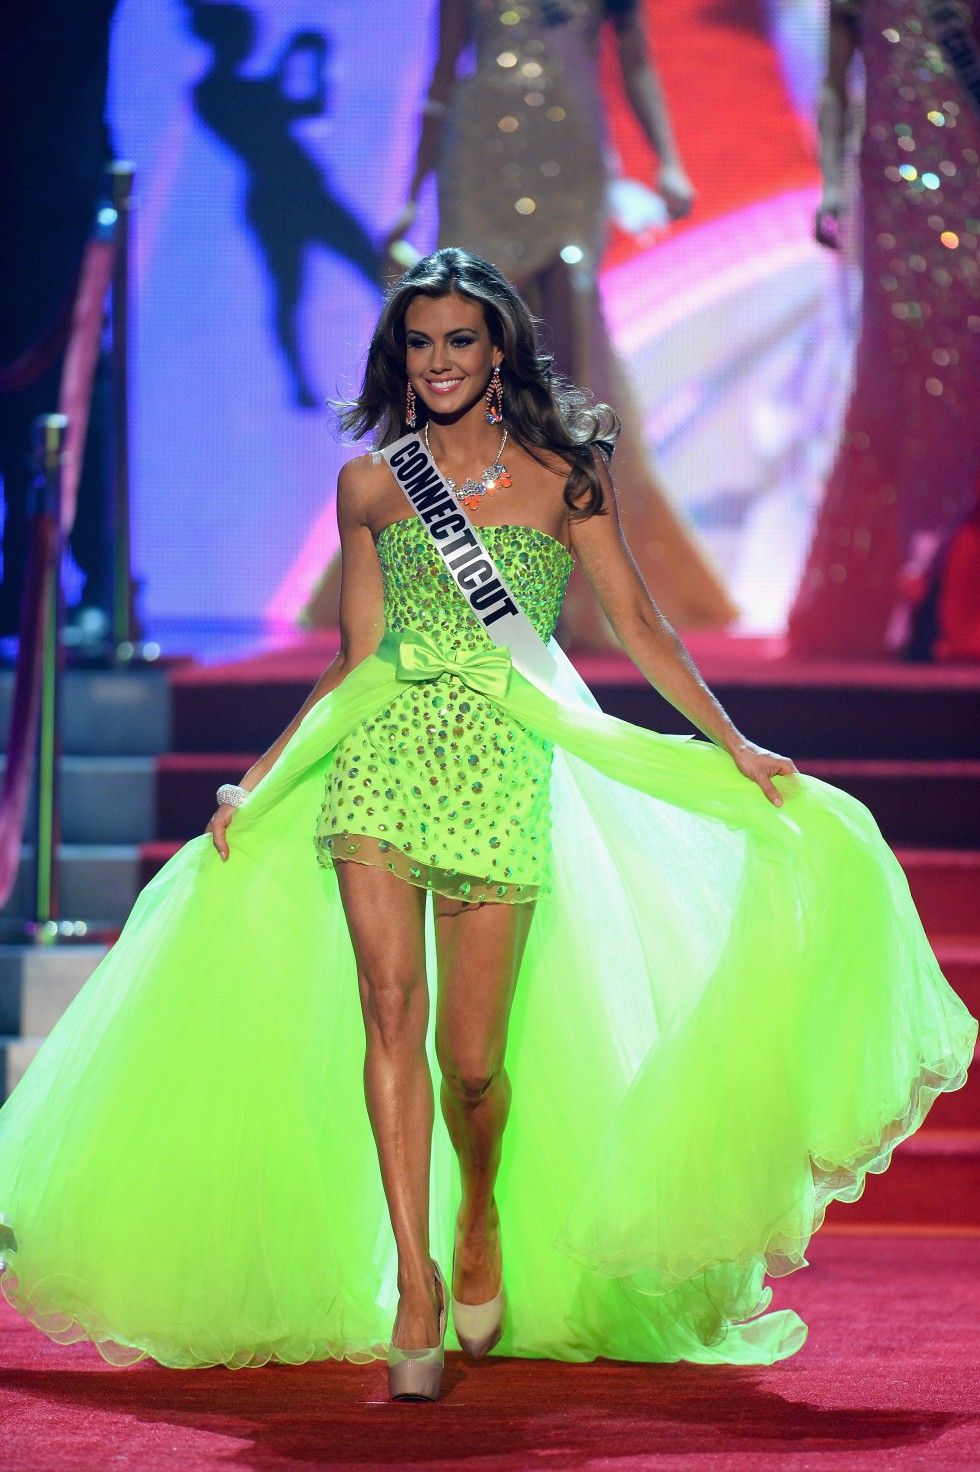 LAS VEGAS, NV - JUNE 16:  Miss Connecticut USA Erin Brady walks onstage during the 2013 Miss USA pageant at PH Live at Planet Hollywood Resort & Casino on June 16, 2013 in Las Vegas, Nevada.